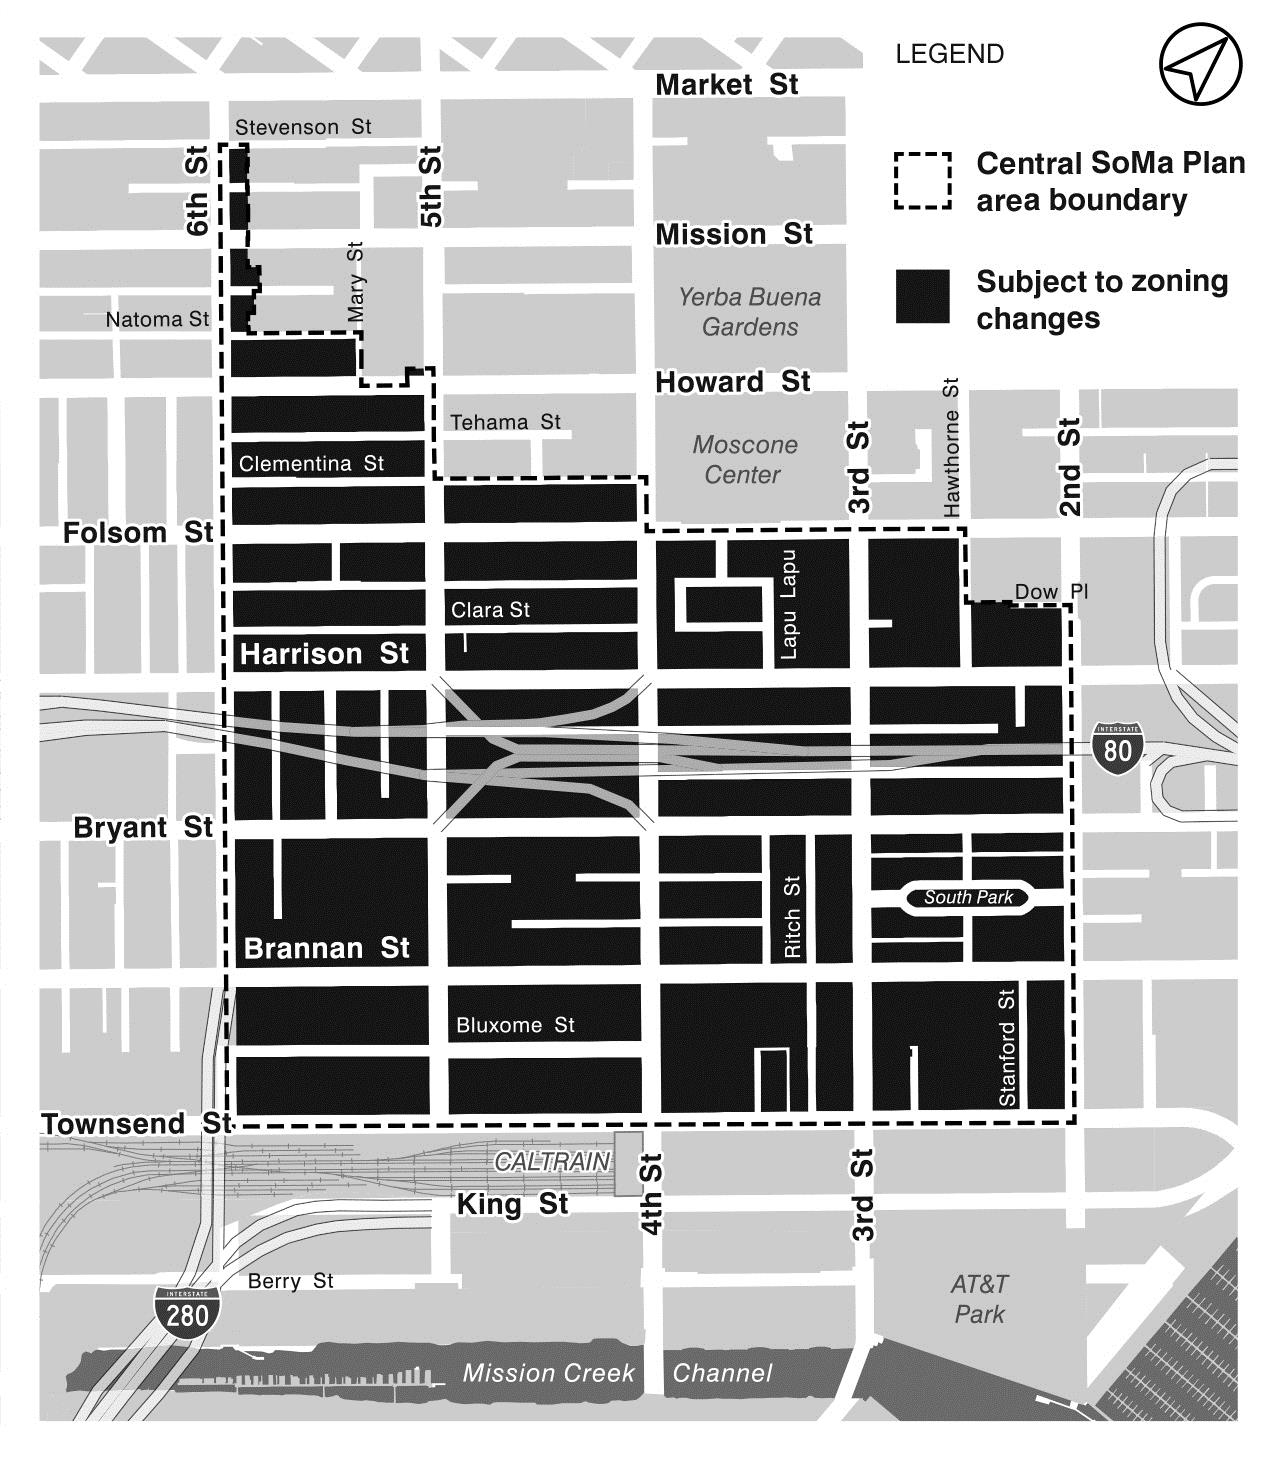 Case No 2017 1356emtzu Central Soma Plan Proposed General Planning Code Administrative And Zoning Map Amendments